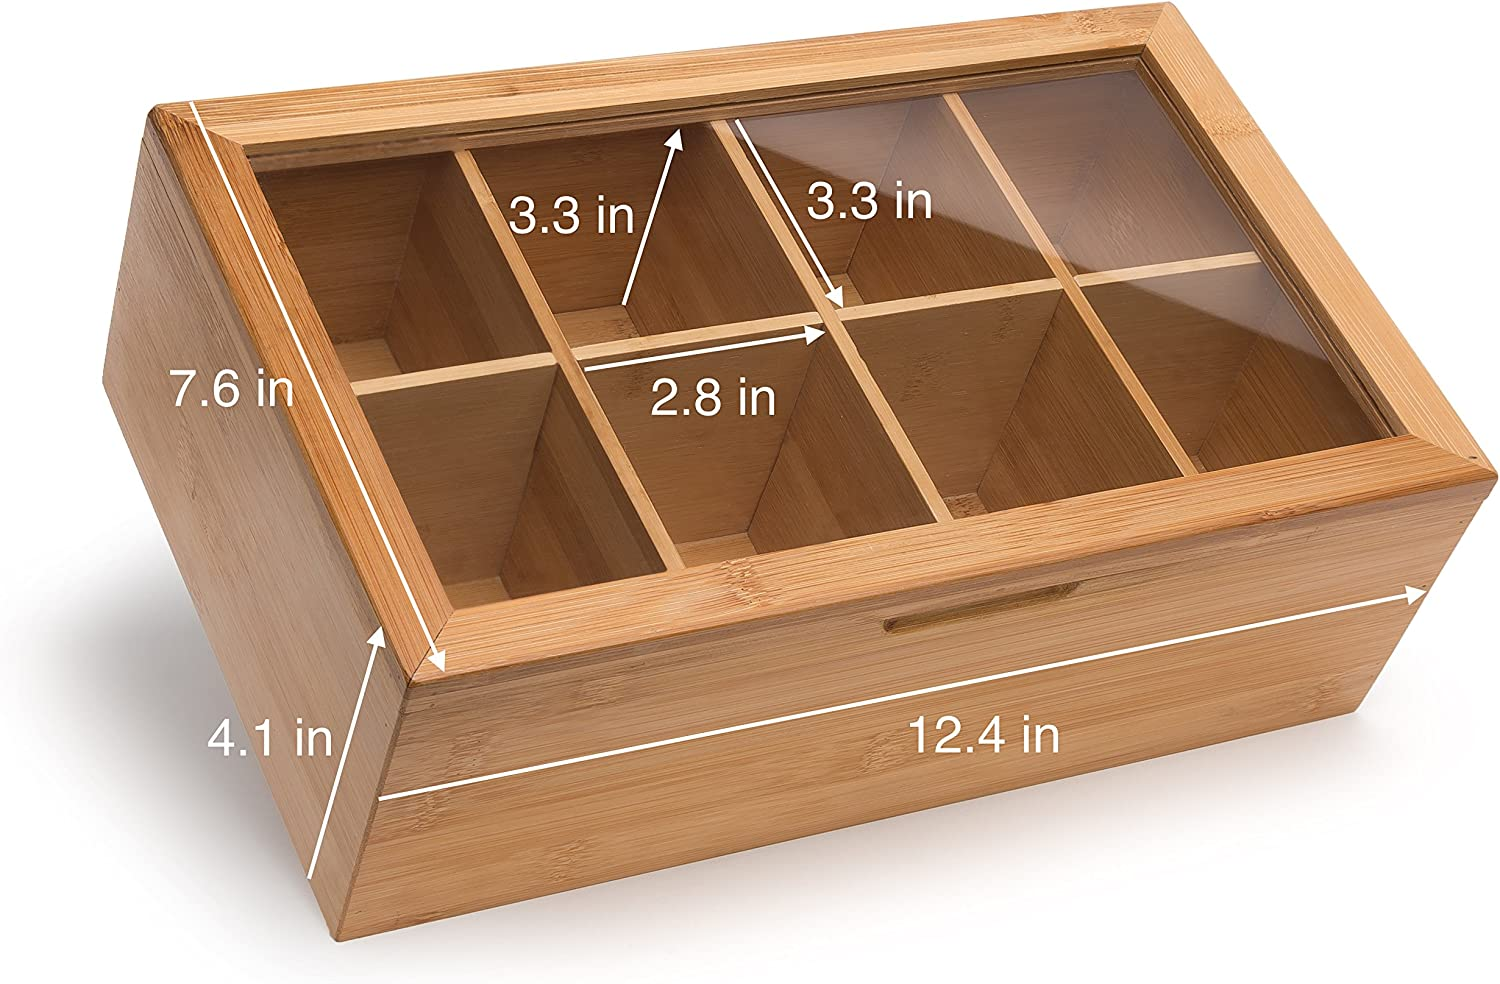 Randomgrounds Bamboo Tea Box Storage Organizer Taller Size Holds 120 Standing Or Flat Tea Bags 8 Adjustable Tea Chest Compartments Natural Wooden Finish Amazon Ca Home Kitchen